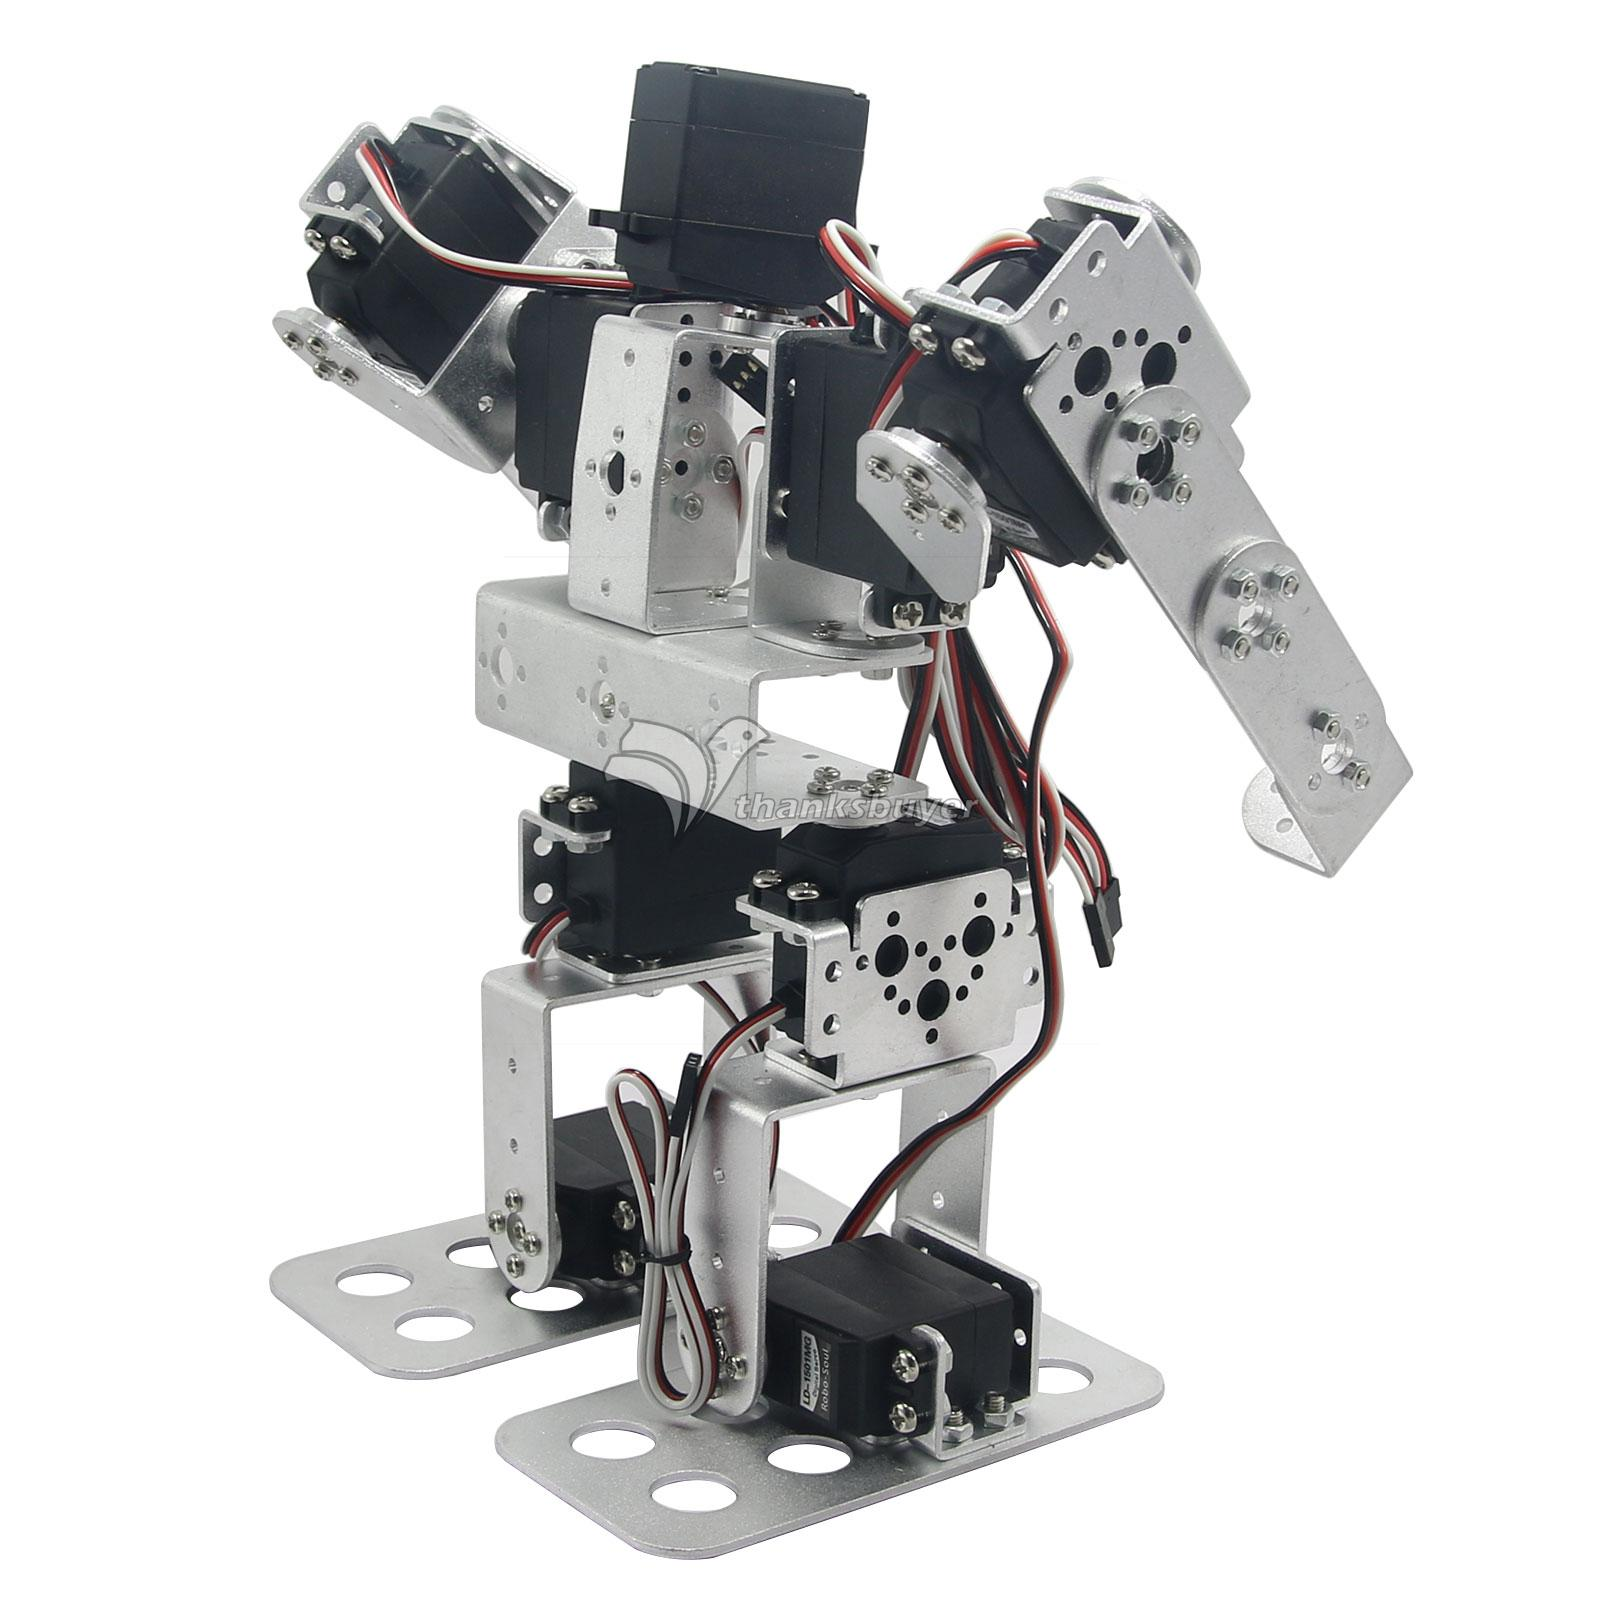 Assembled 9DOF Biped Robot Educational Robot with Metal Horn Ball Bearing LD-1501MG Servo for RC Toy new 17 degrees of freedom humanoid biped robot teaching and research biped robot platform model no electronic control system